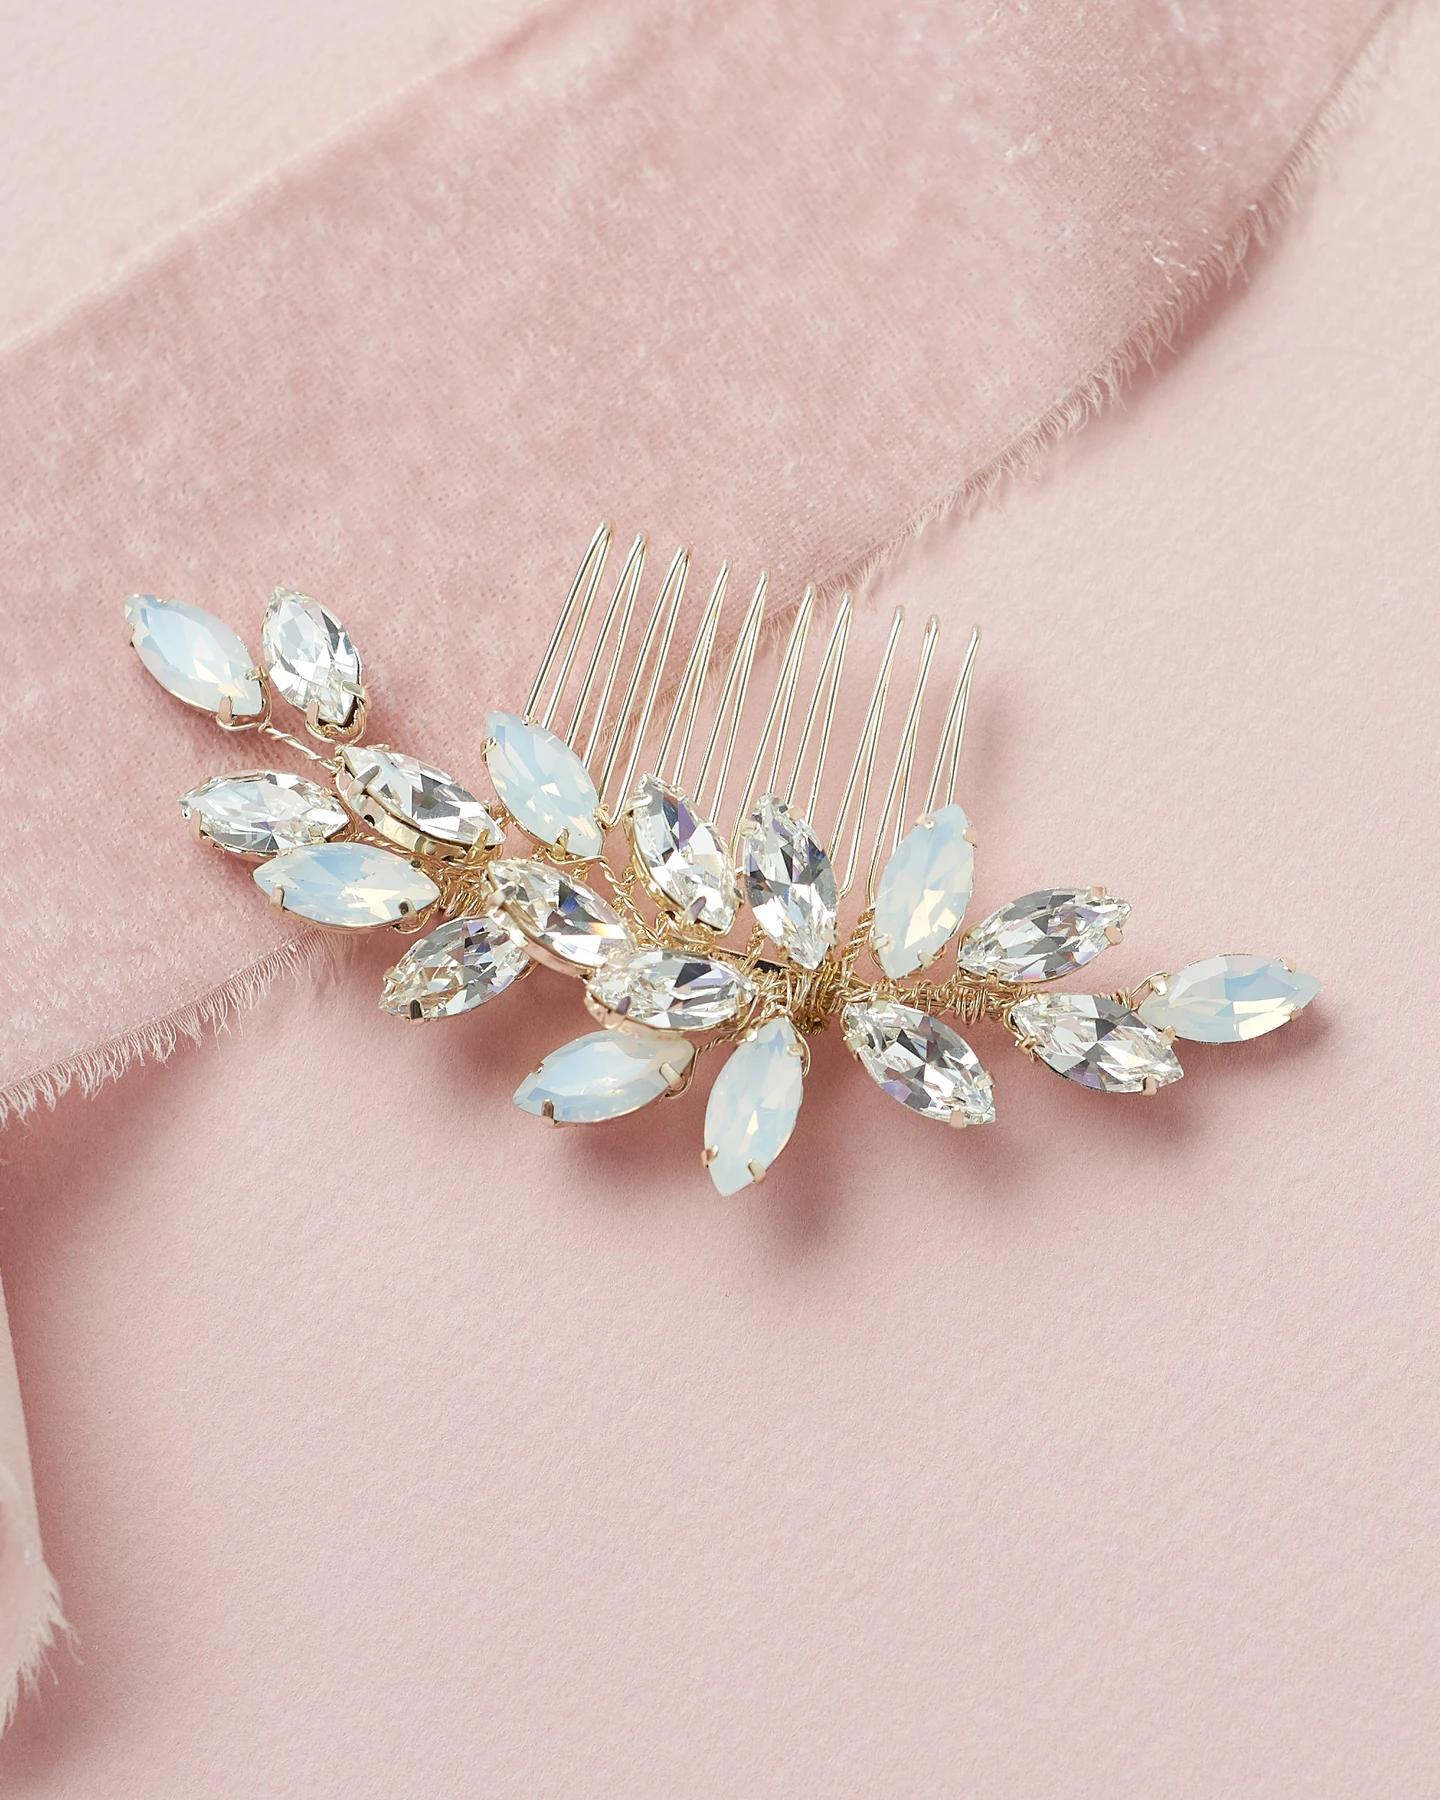 Nora_Bridal wedding Comb silver, gold with crystals and opals